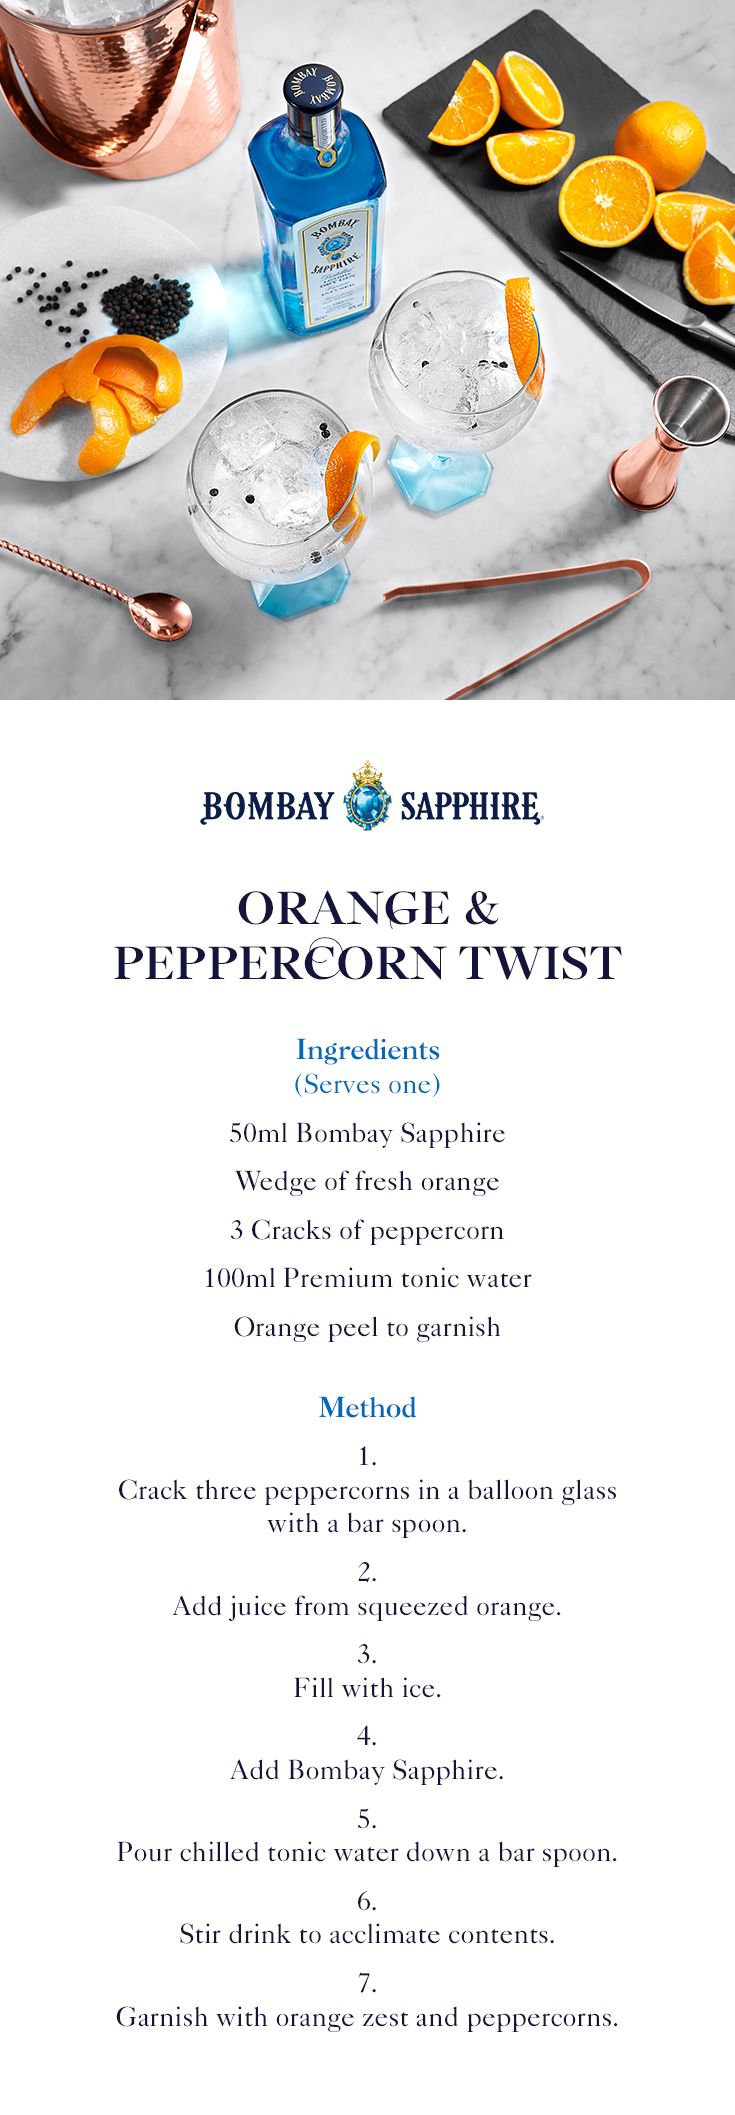 Orange & Peppercorn Twist | A step-by-step guide to creating a twist on a classic gin and tonic | 50ml Bombay Sapphire | Wedge of fresh orange | 3 Cracks of peppercorn | 100ml Premium tonic water | Orange peel to garnish (classic cocktails bartender)